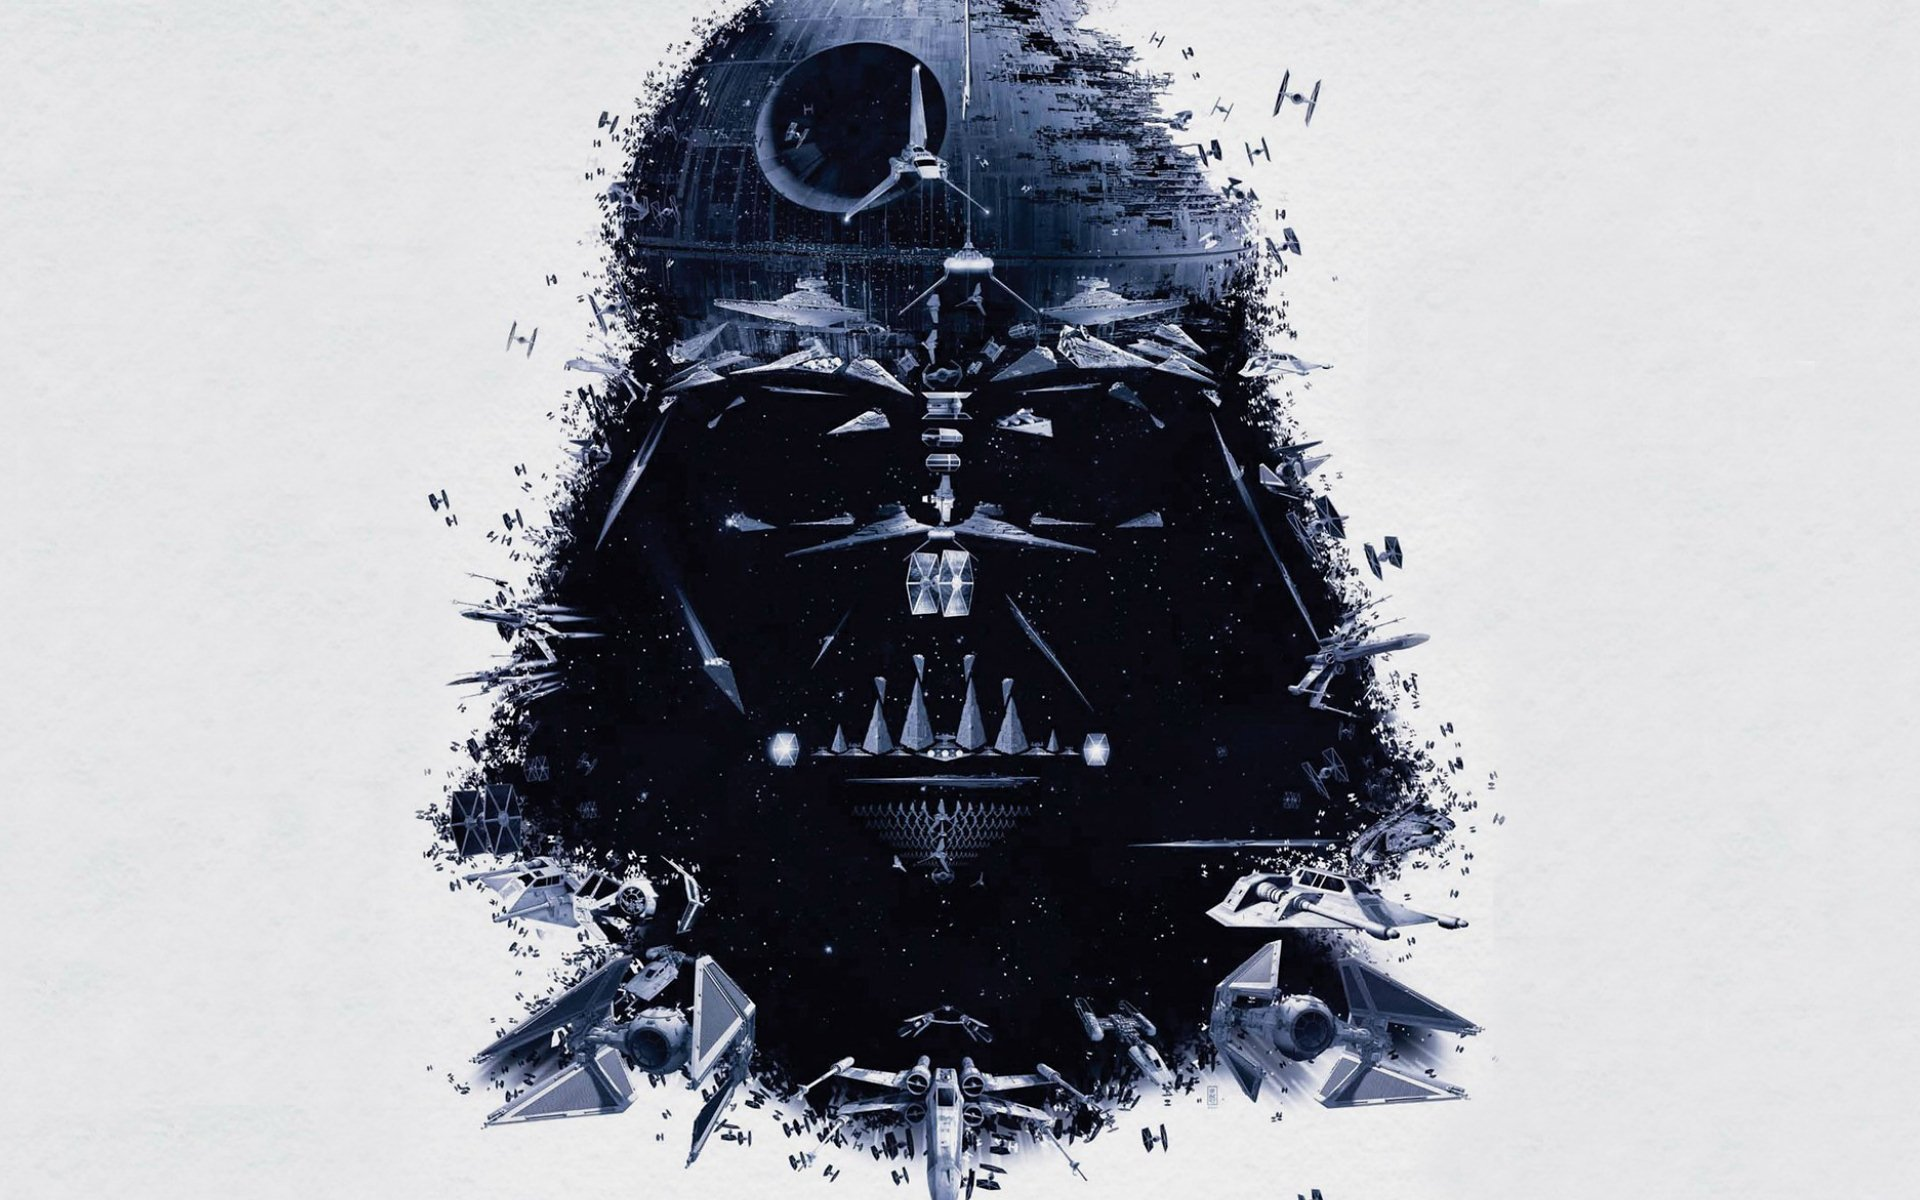 Movie - Star Wars  Darth Vader Death Star Wallpaper